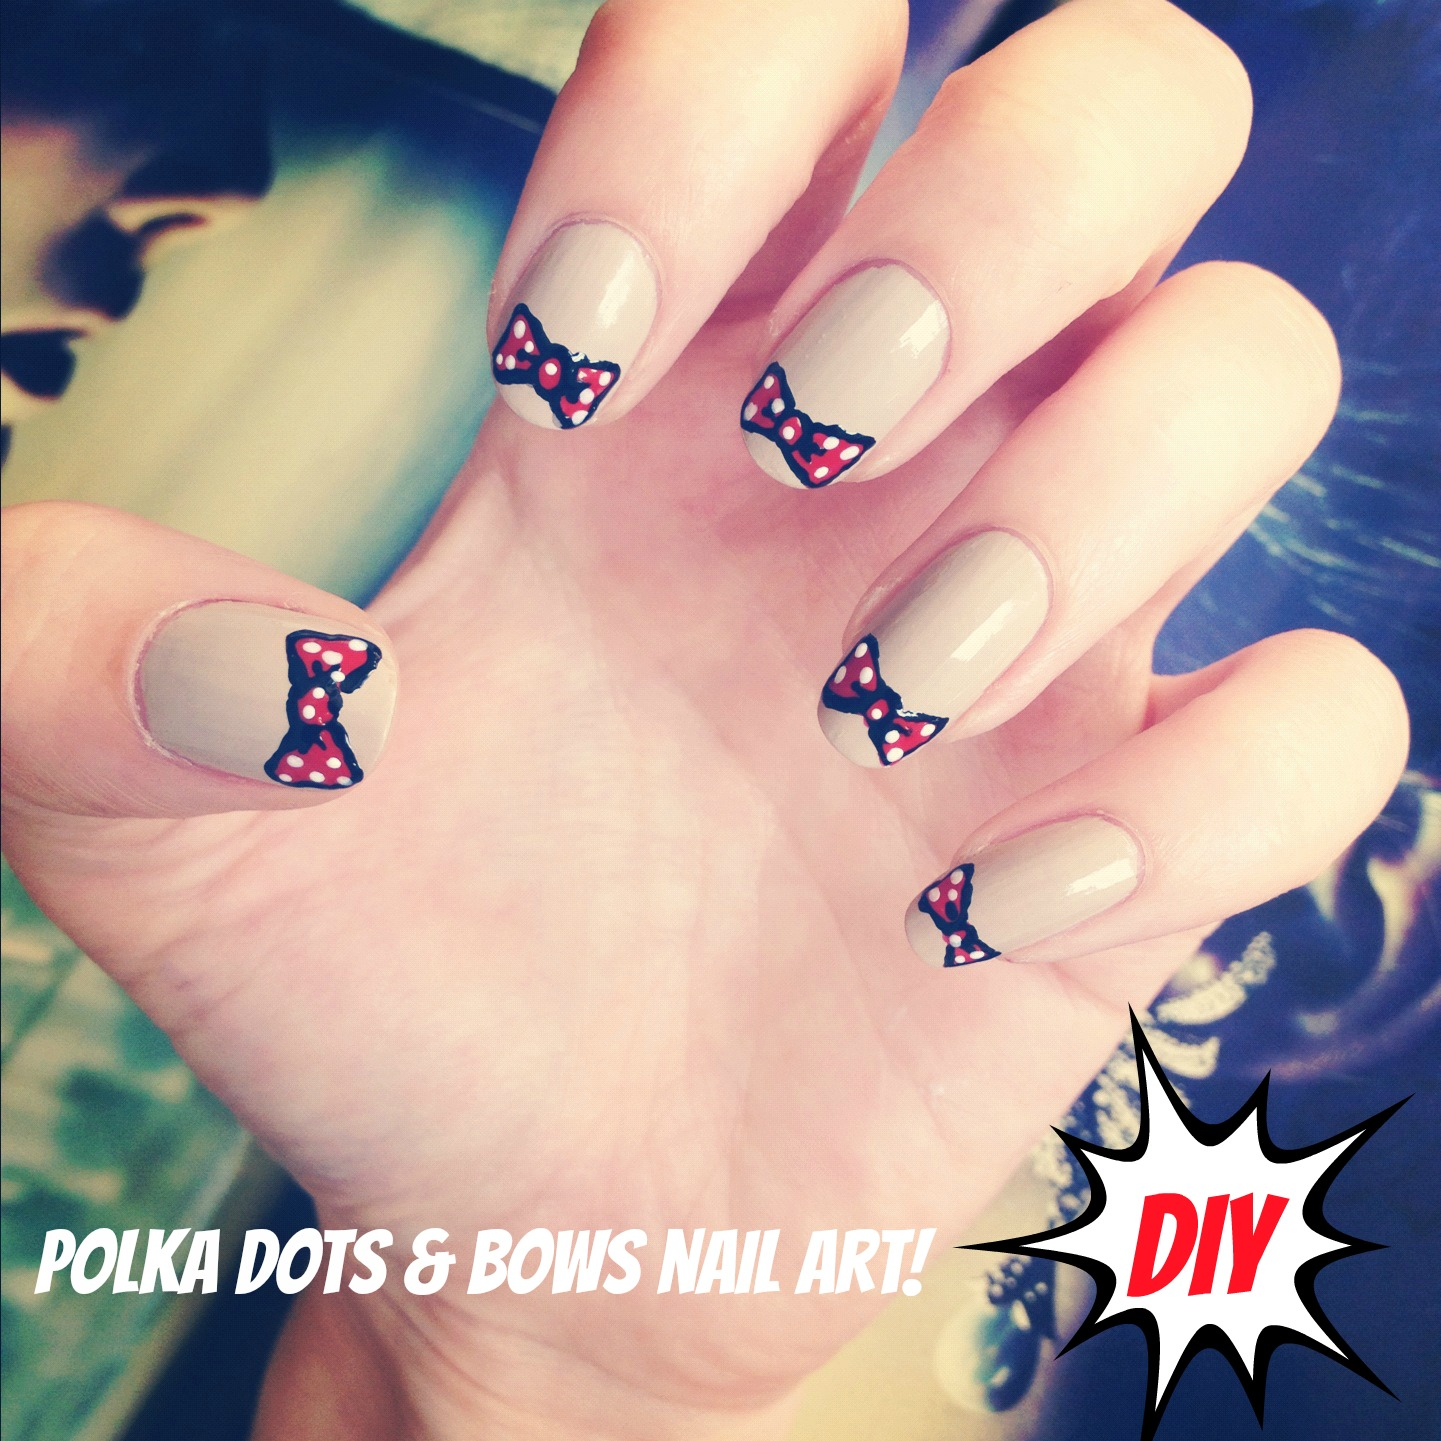 Adorable Nail Art: Cute Bow Nail Art DIY!